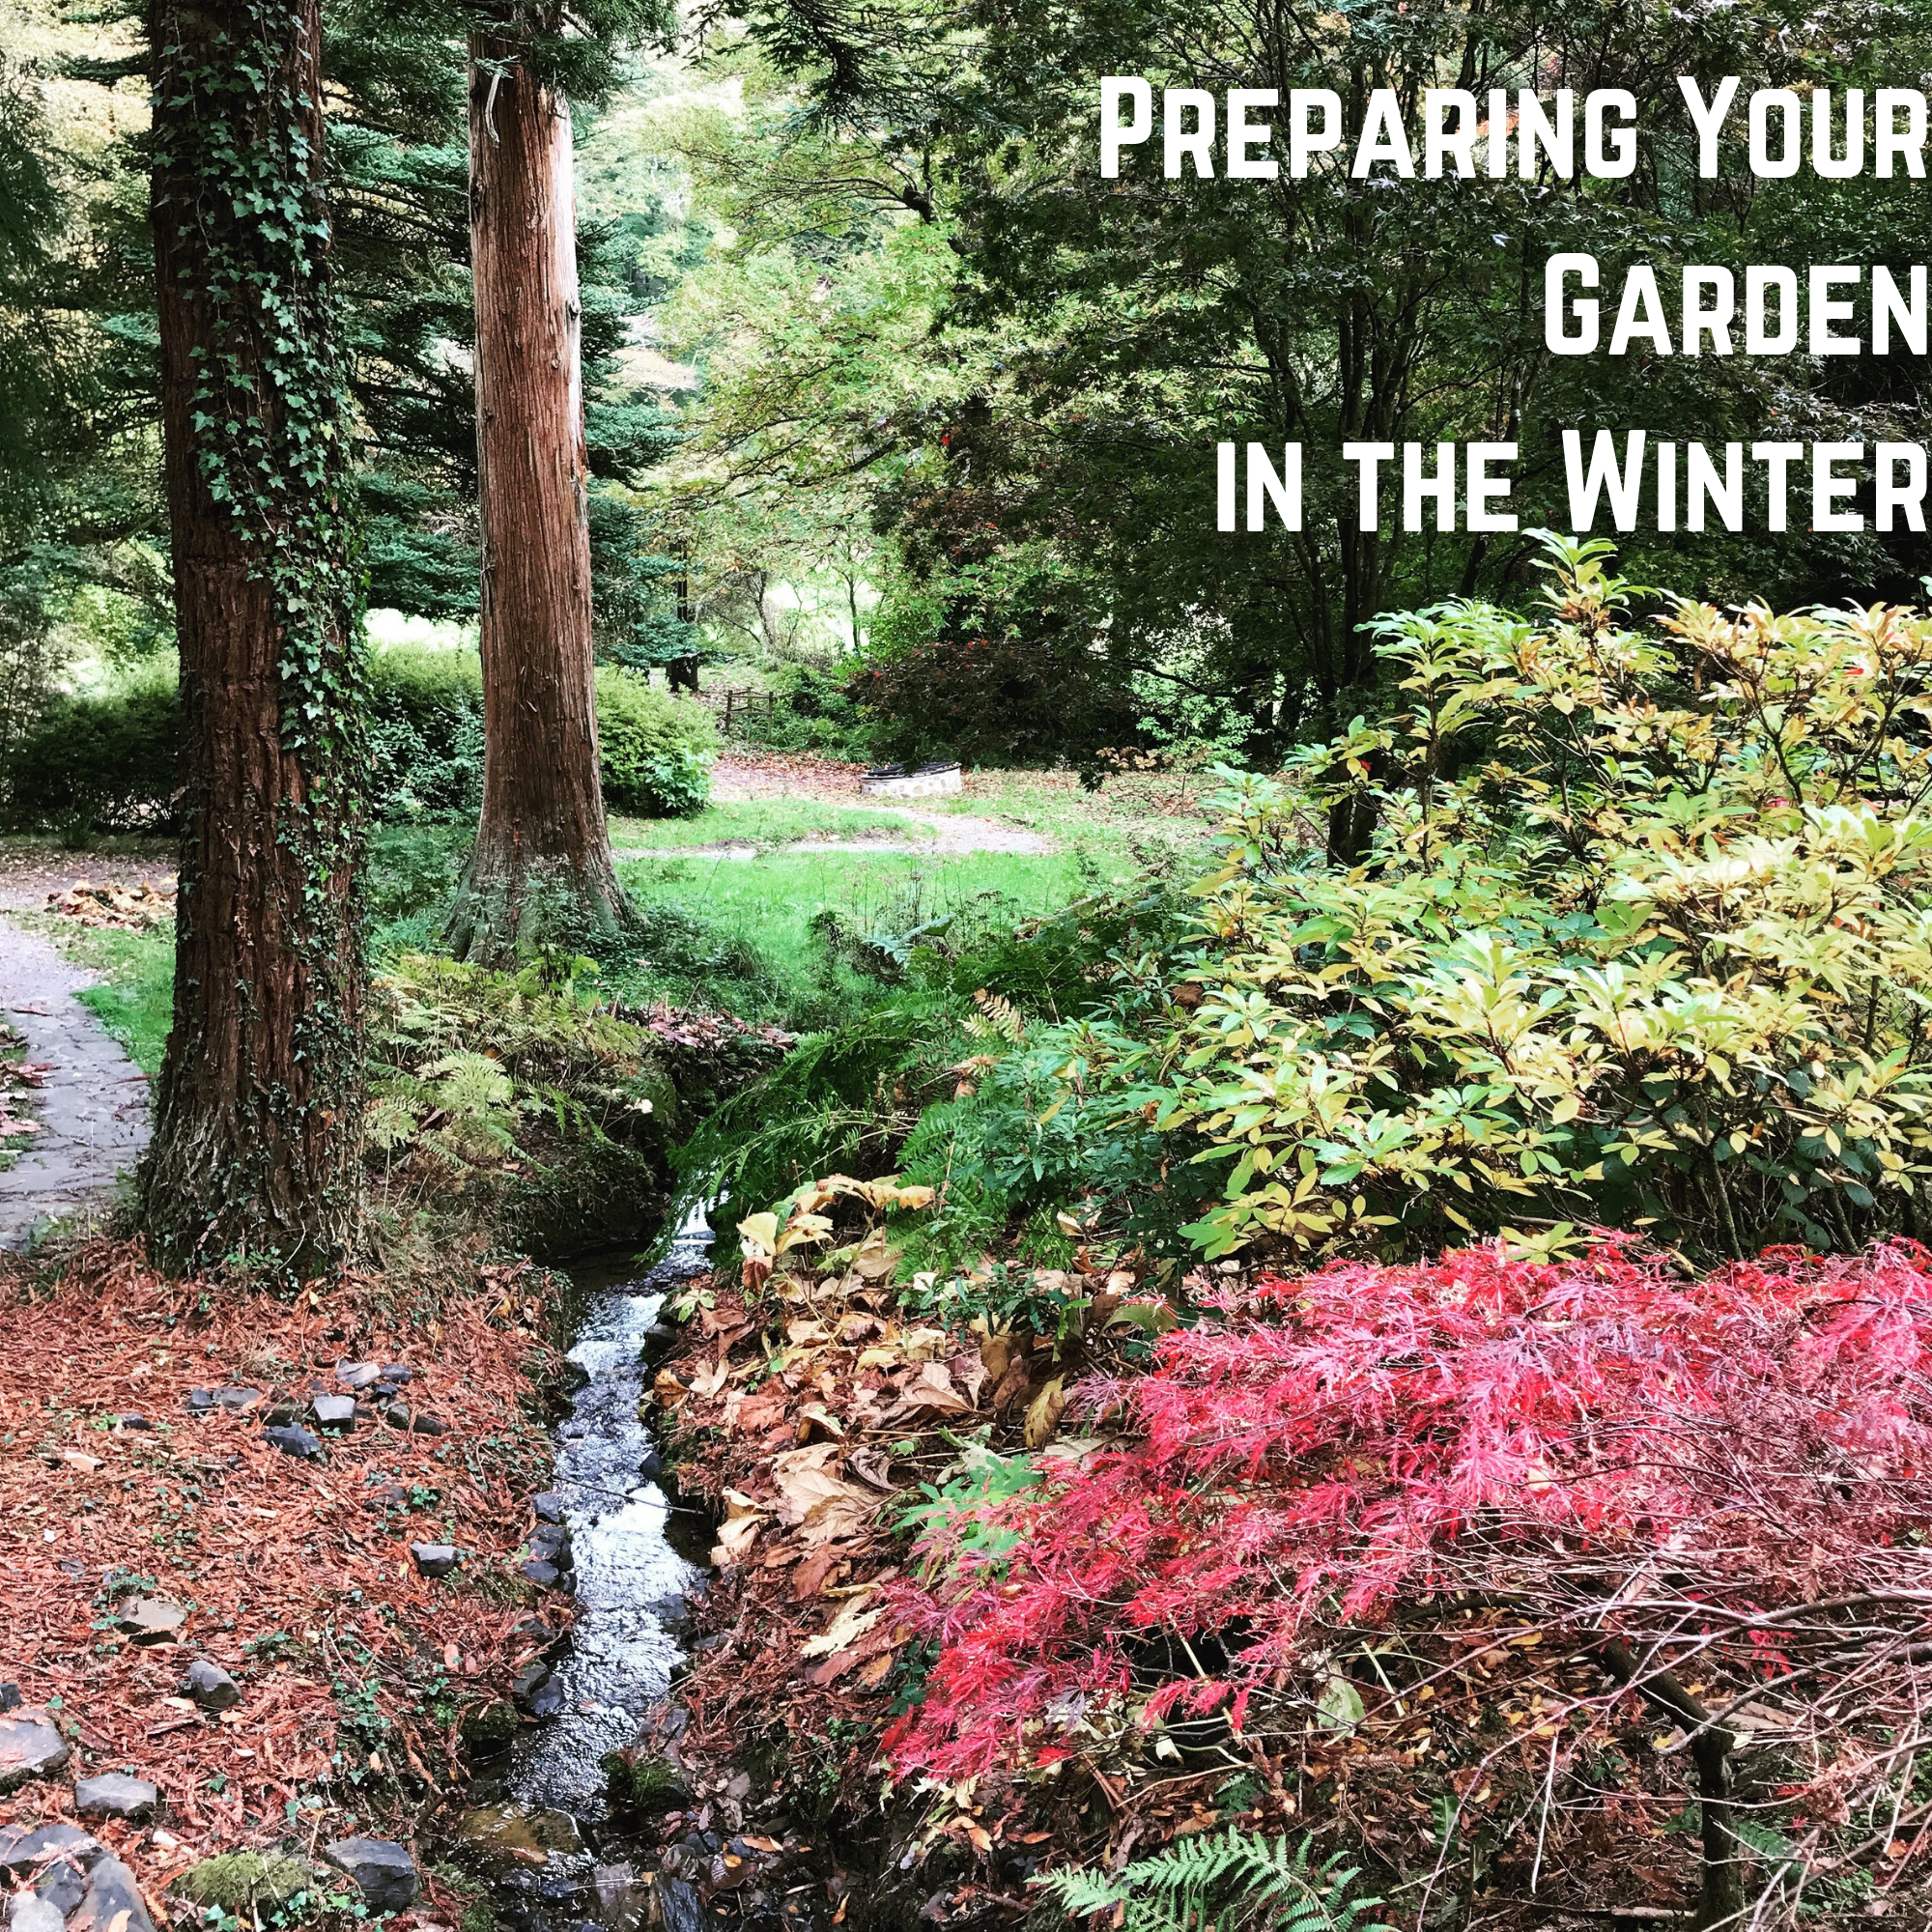 Preparing Your Garden in the Winter